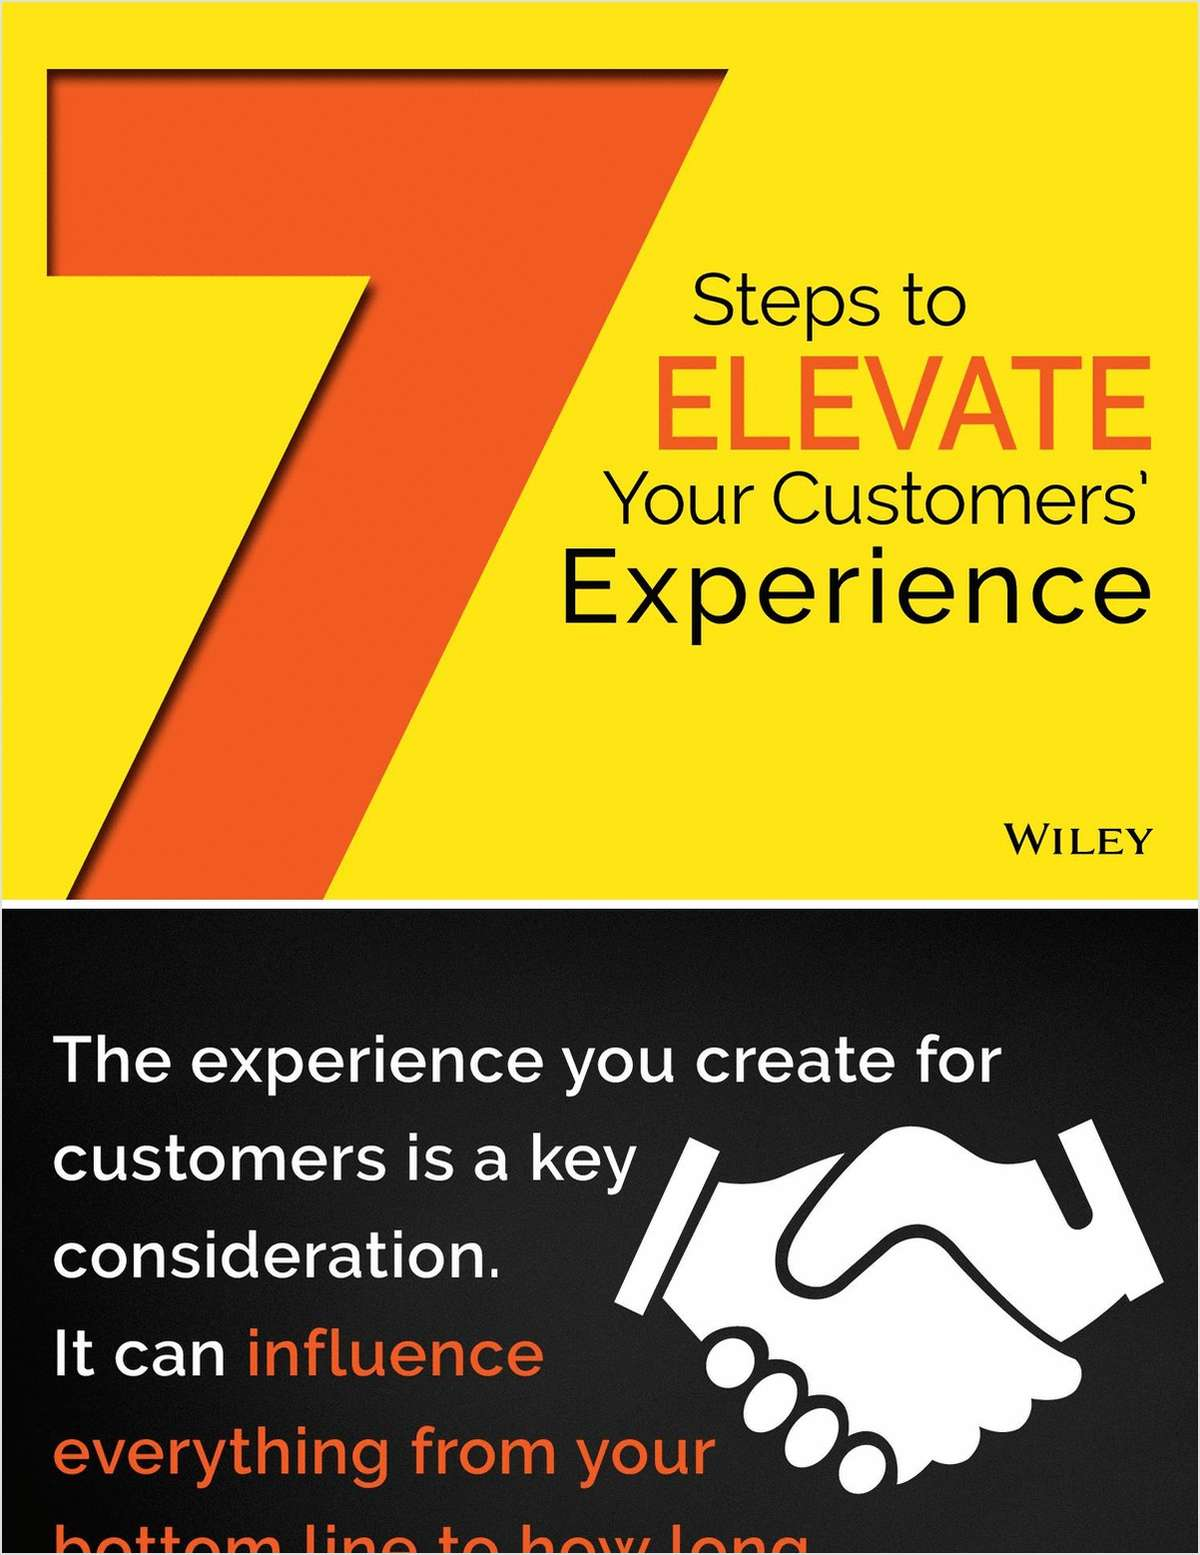 7 Steps to Elevate Your Customers' Experience